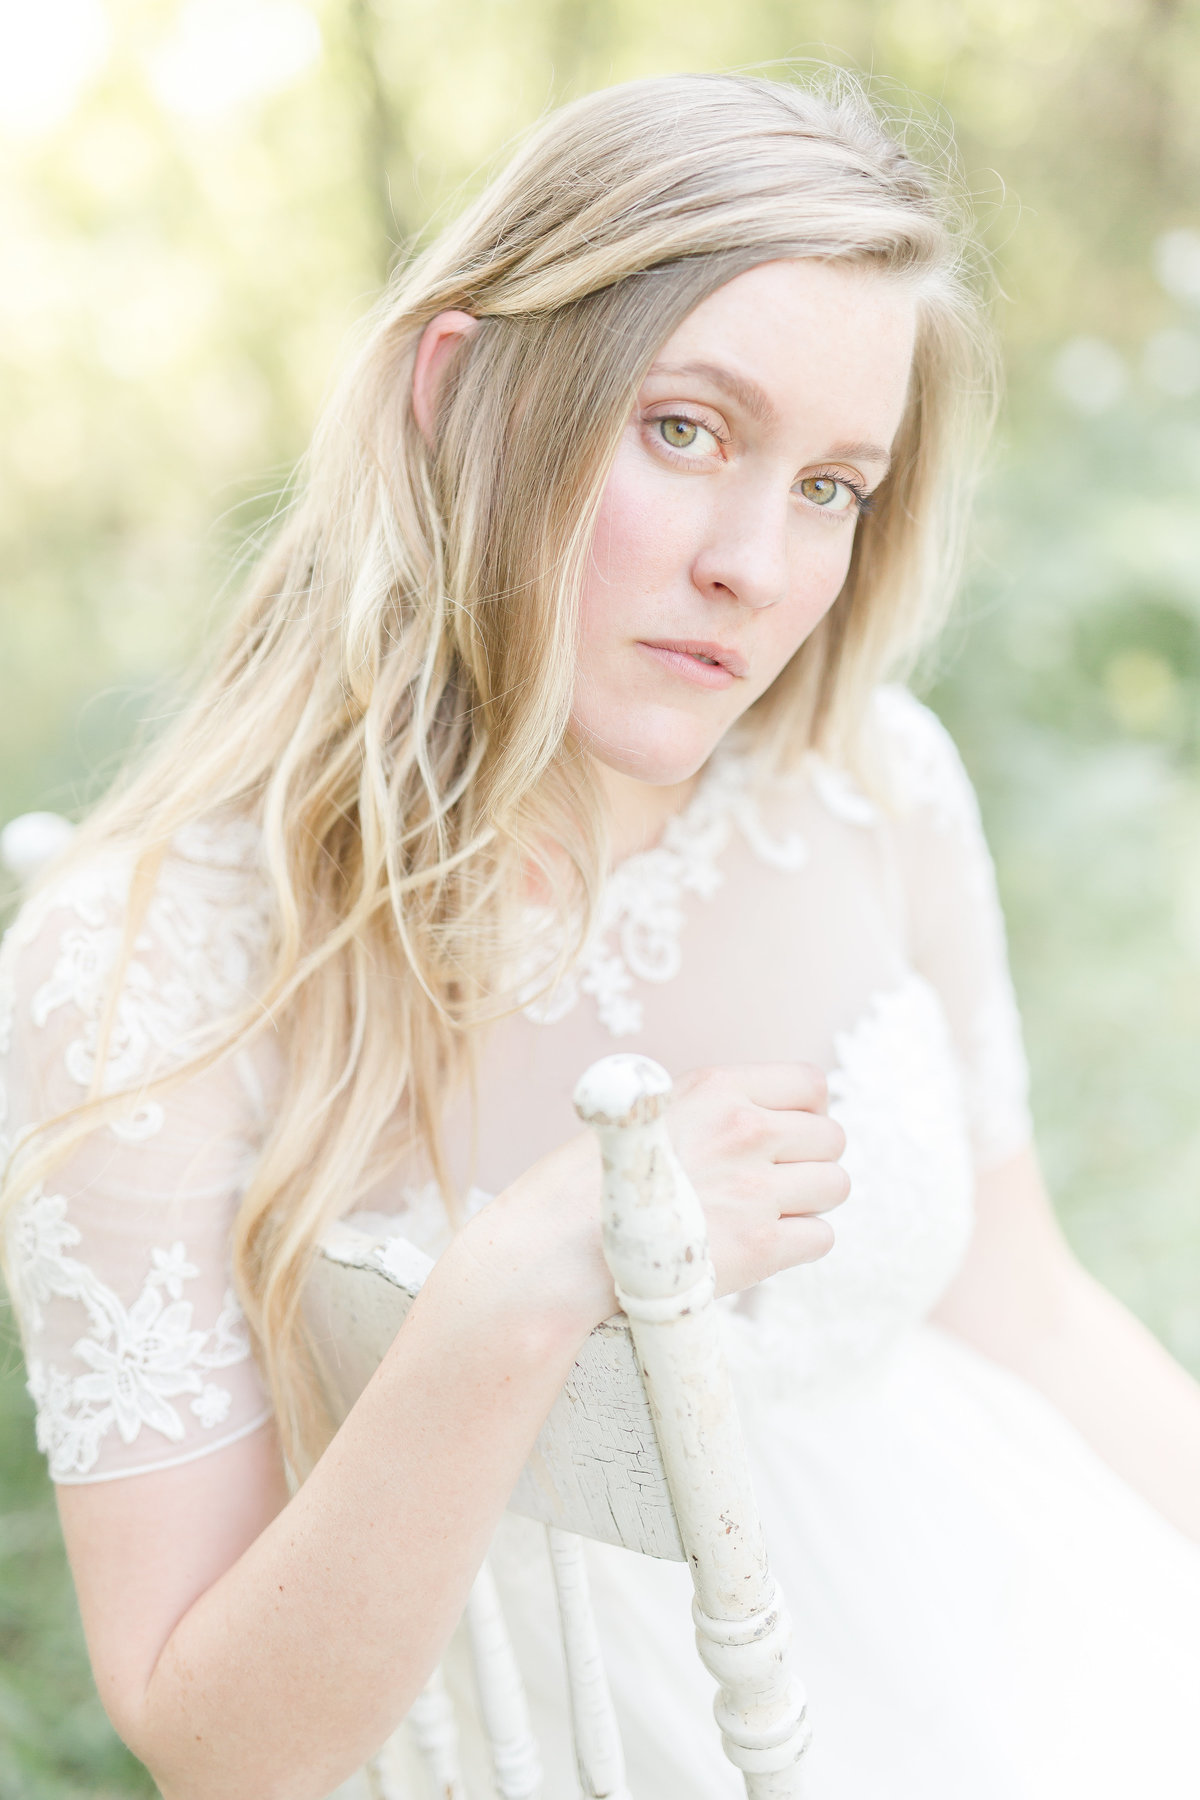 Kailey - Styled Shoot - New Edits-121